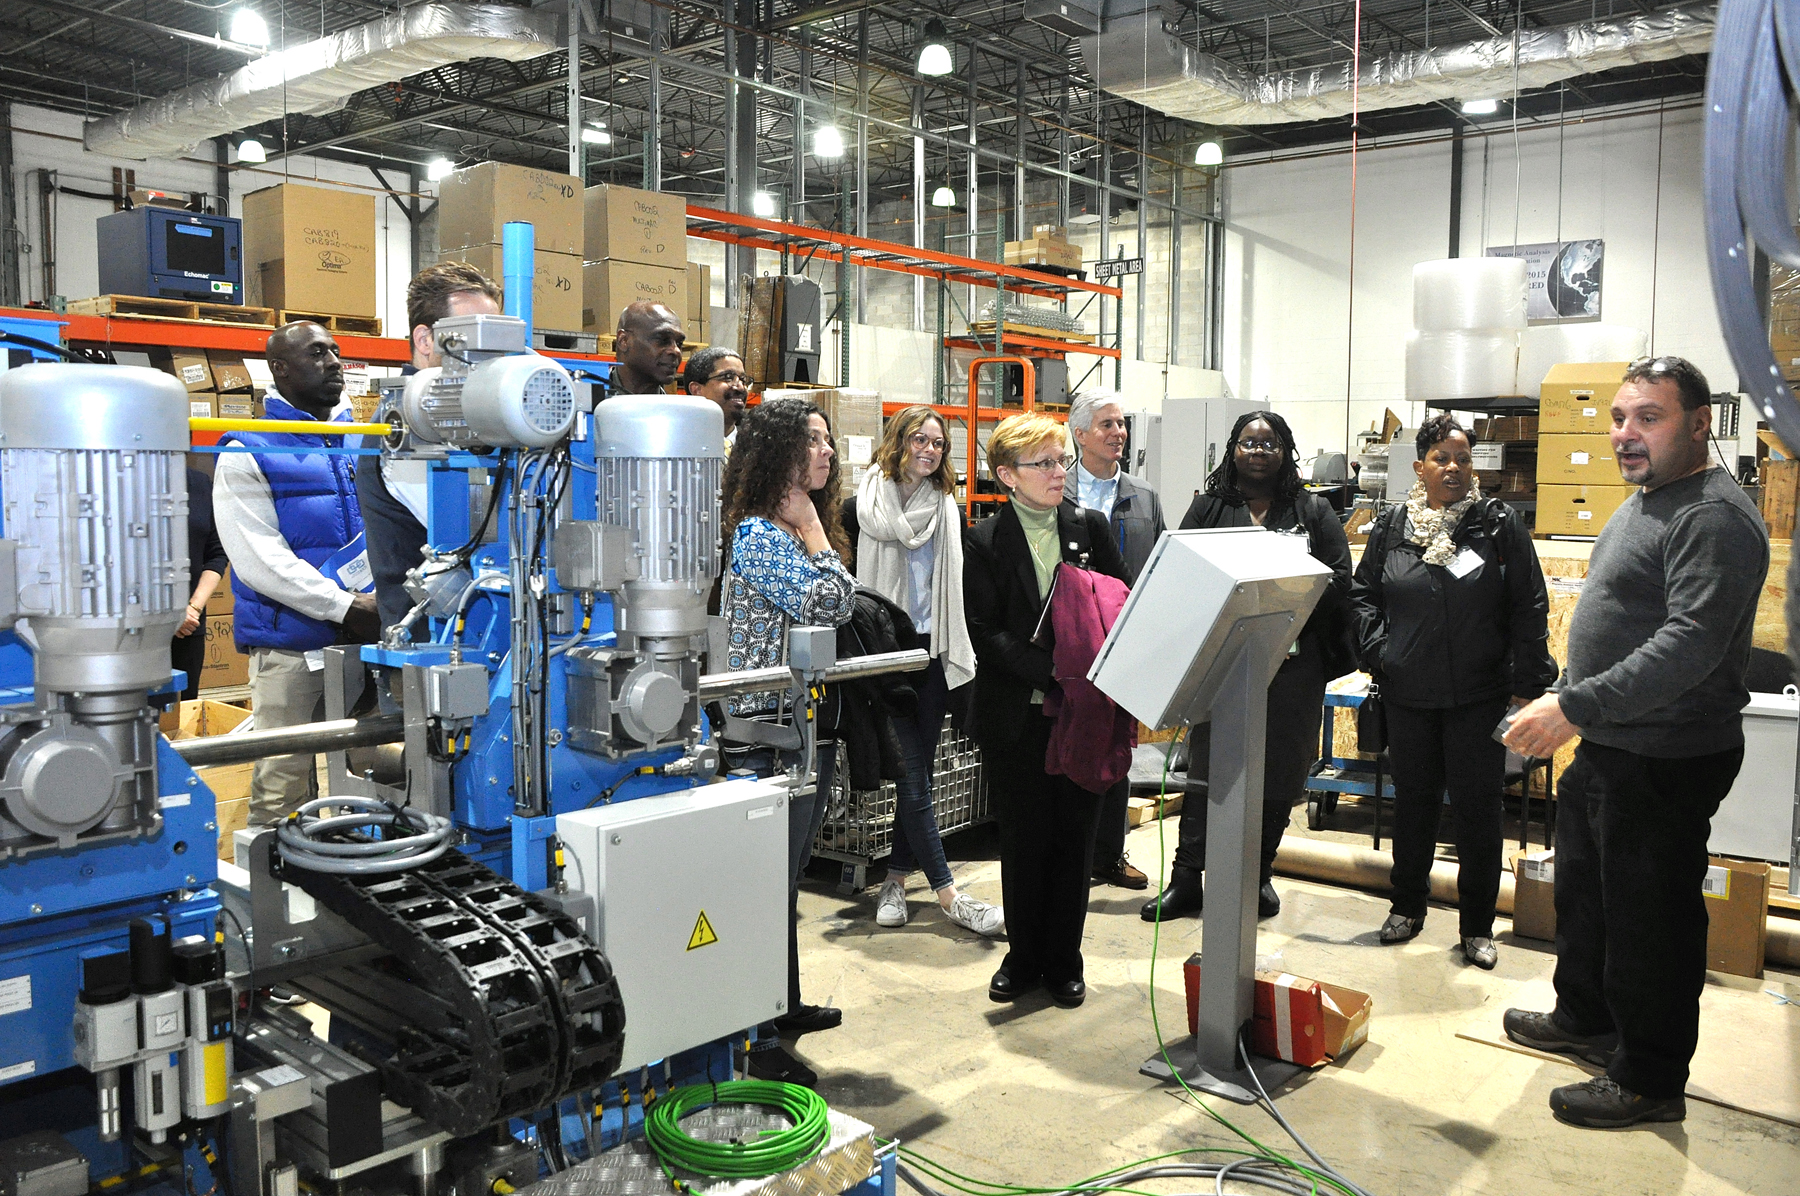 Educators visit MAC